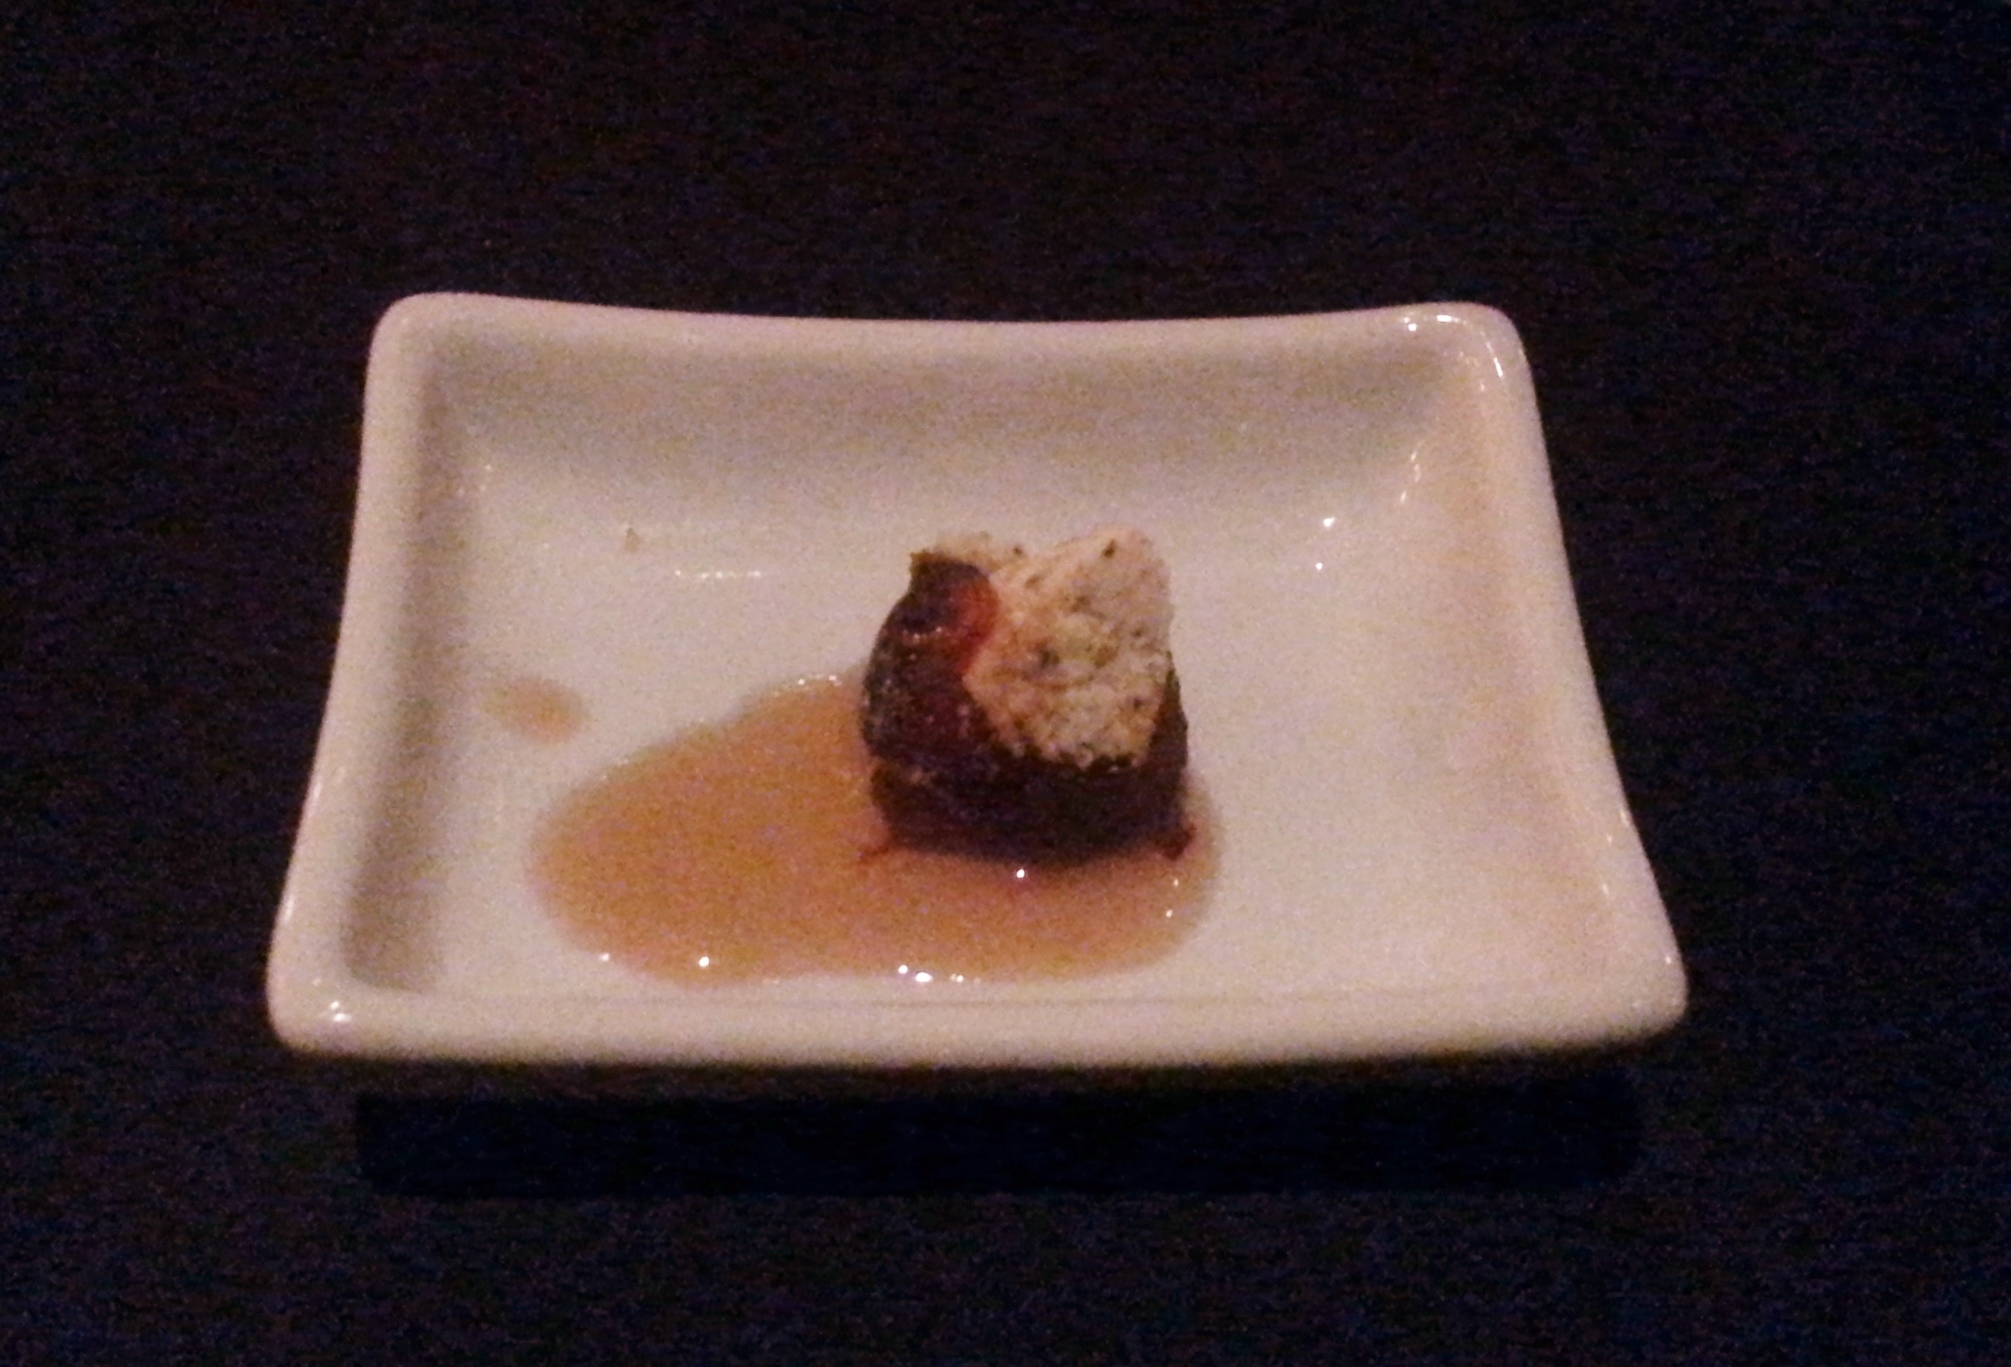 Amuse bouche Date with honey and spices